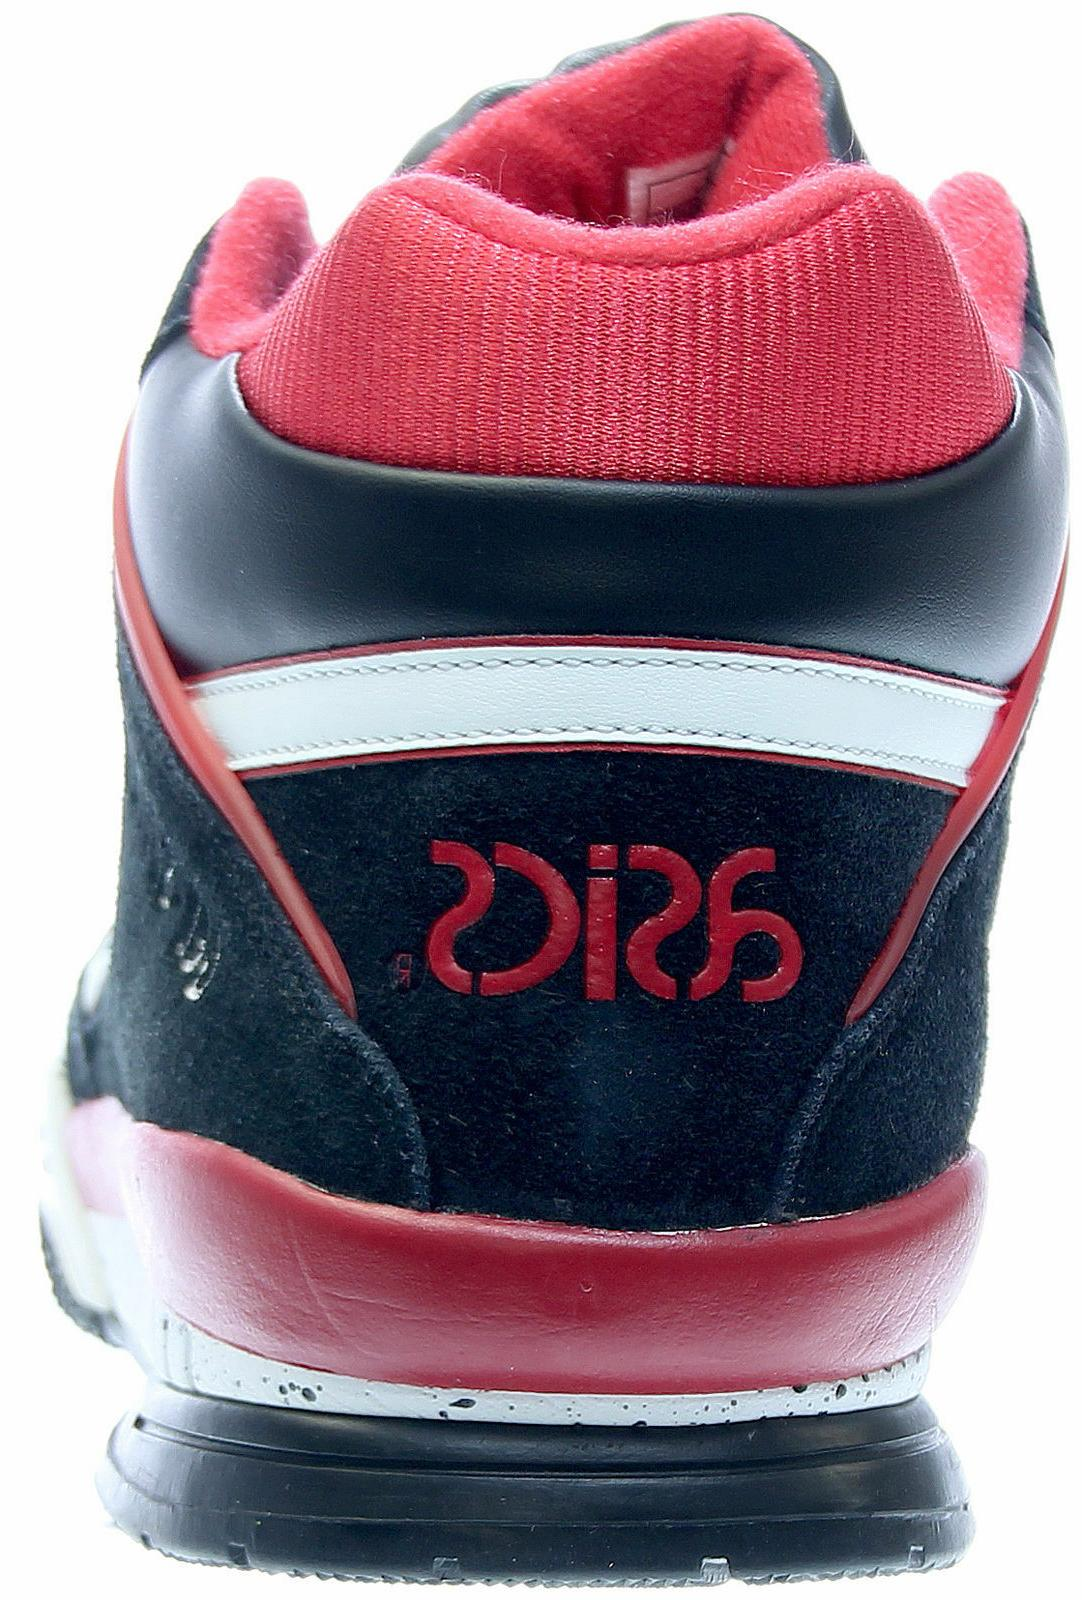 Mens High Top Black/White/Red